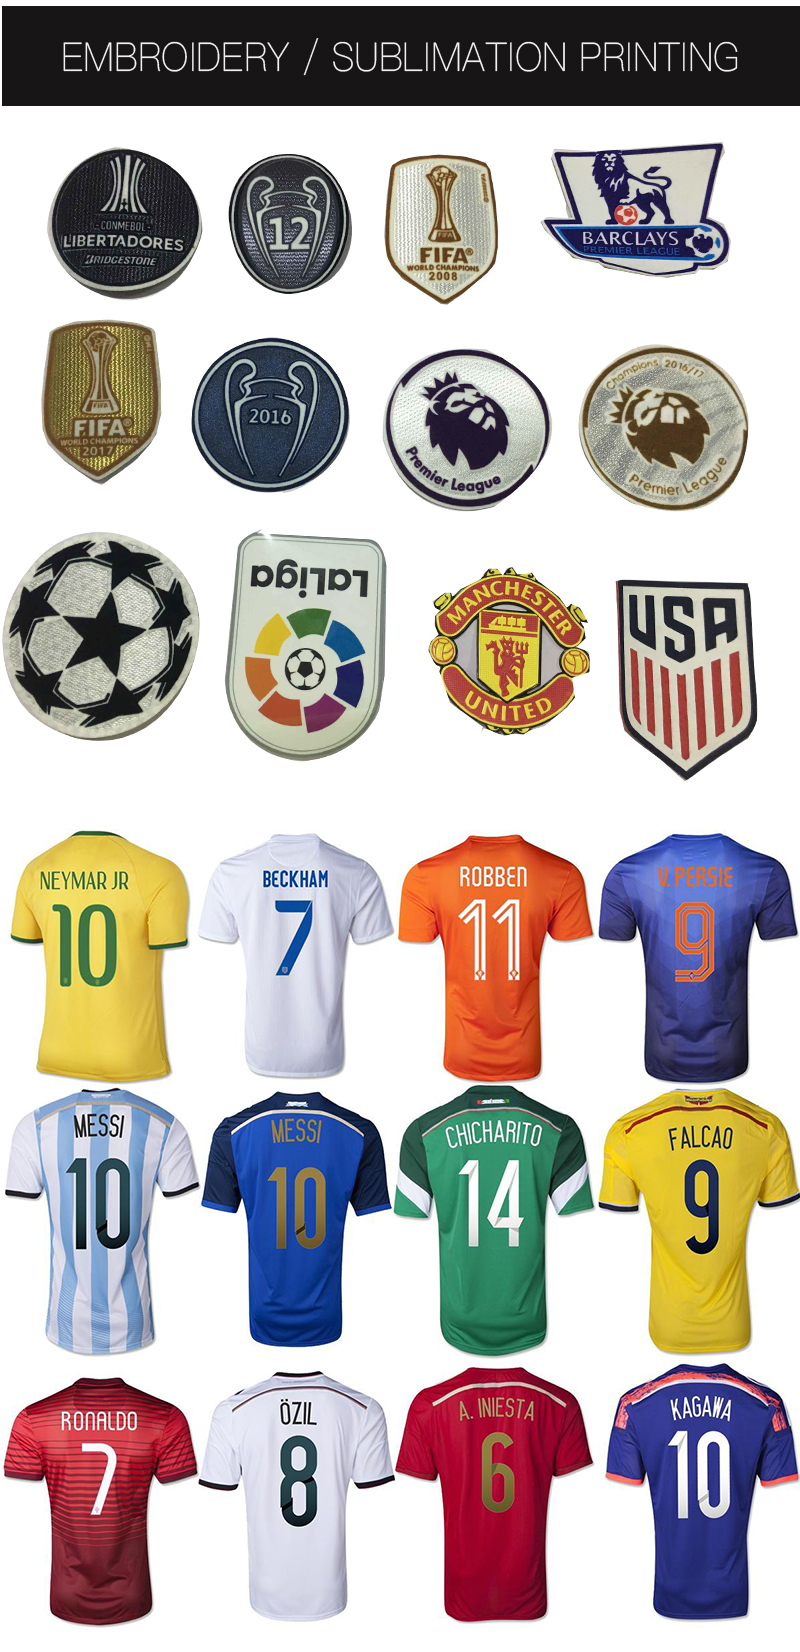 on sale 84861 d40d3 2017 Manufacture Most Popular Durable Perfect Soccer Jersey - Buy Cheap  Soccer Jerseys,Soccer Jerseys,Manufacture Product on Alibaba.com